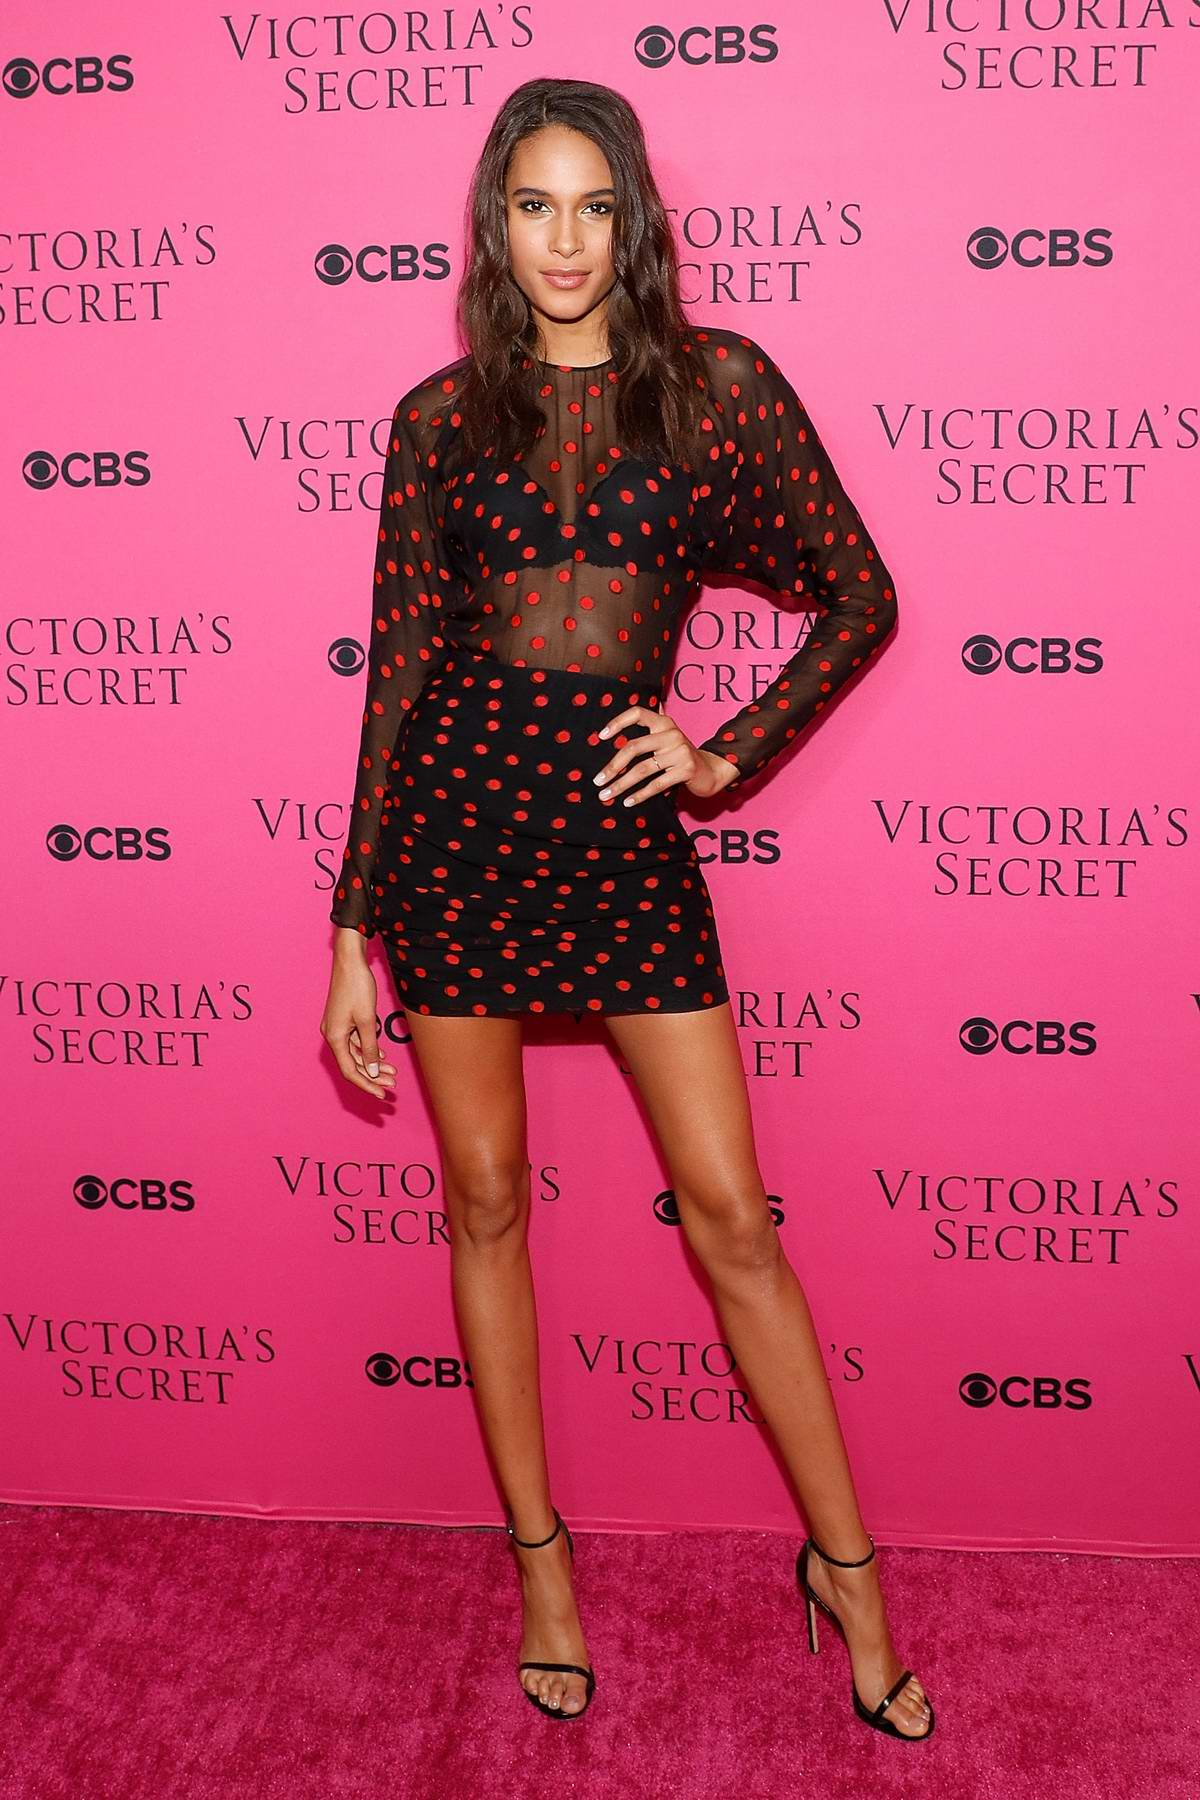 Cindy Bruna at the Victoria's Secret Fashion Show viewing party in New York